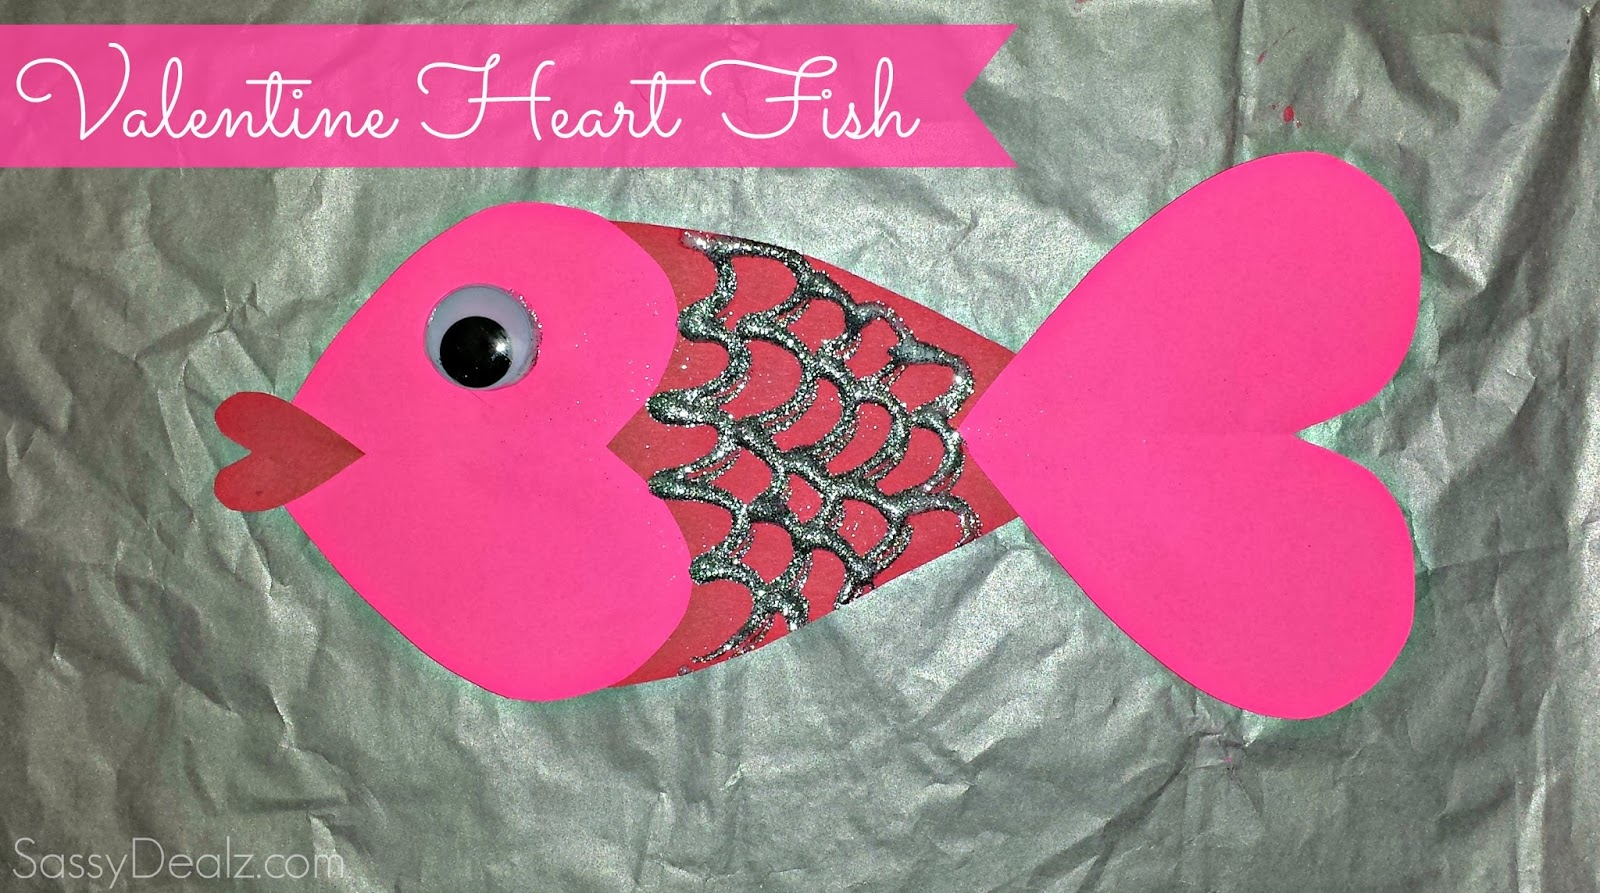 Valentines Day Heart Fish Art Project